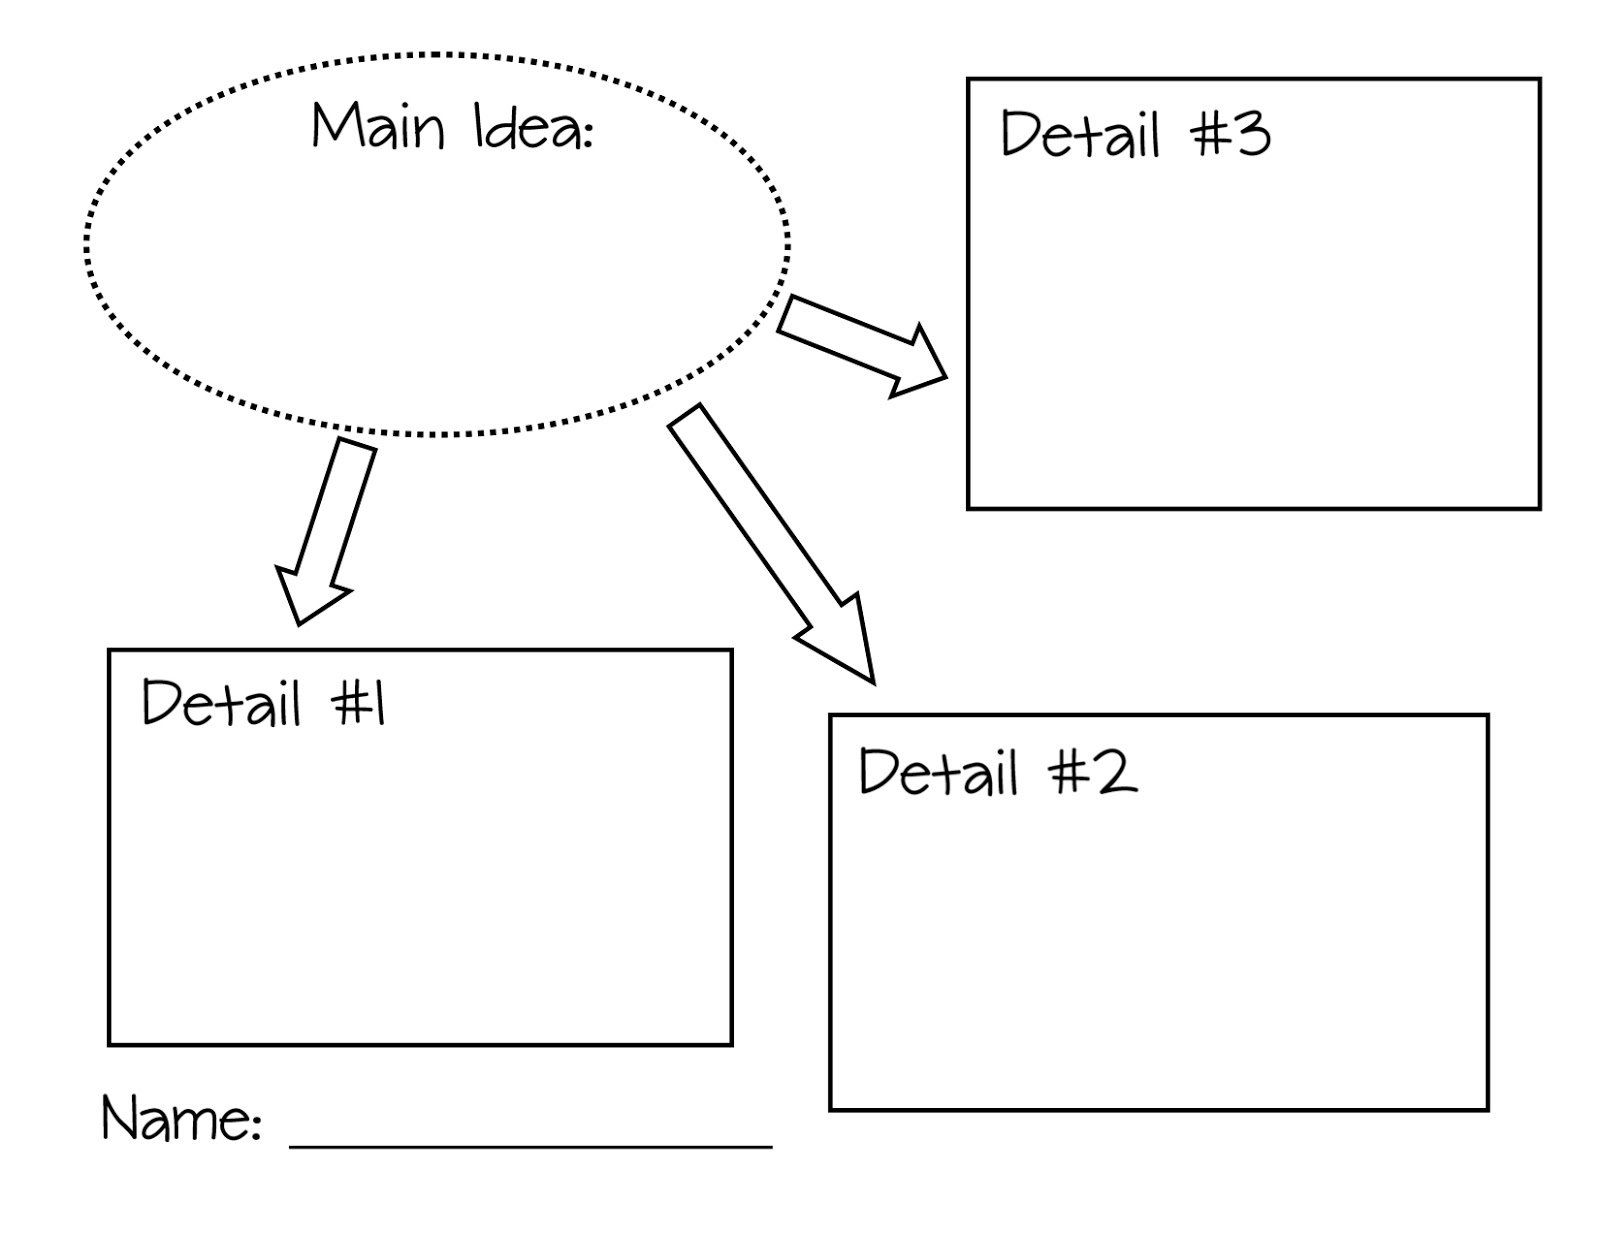 10 Best Graphic Organizer For Main Idea 30 images of charts for supporting details template boatsee 1 2020